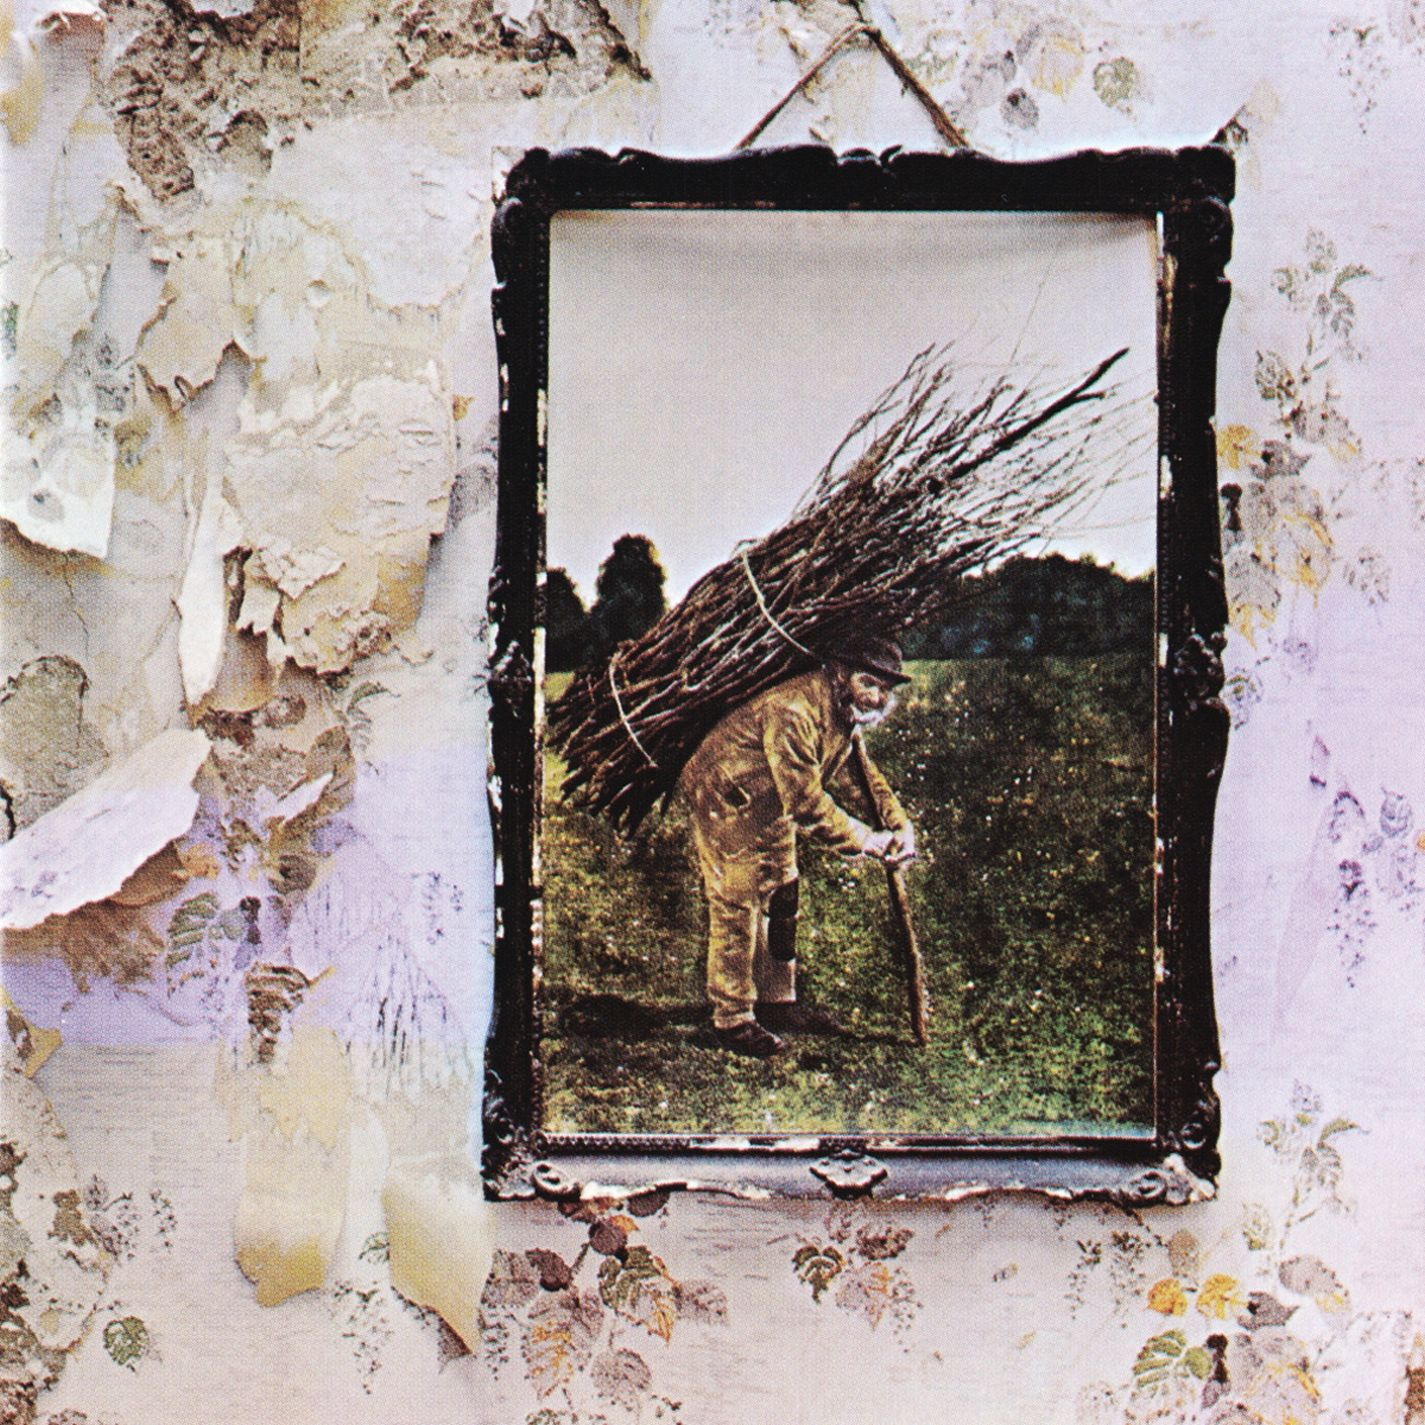 1970 - Untitled (Led Zeppelin IV)